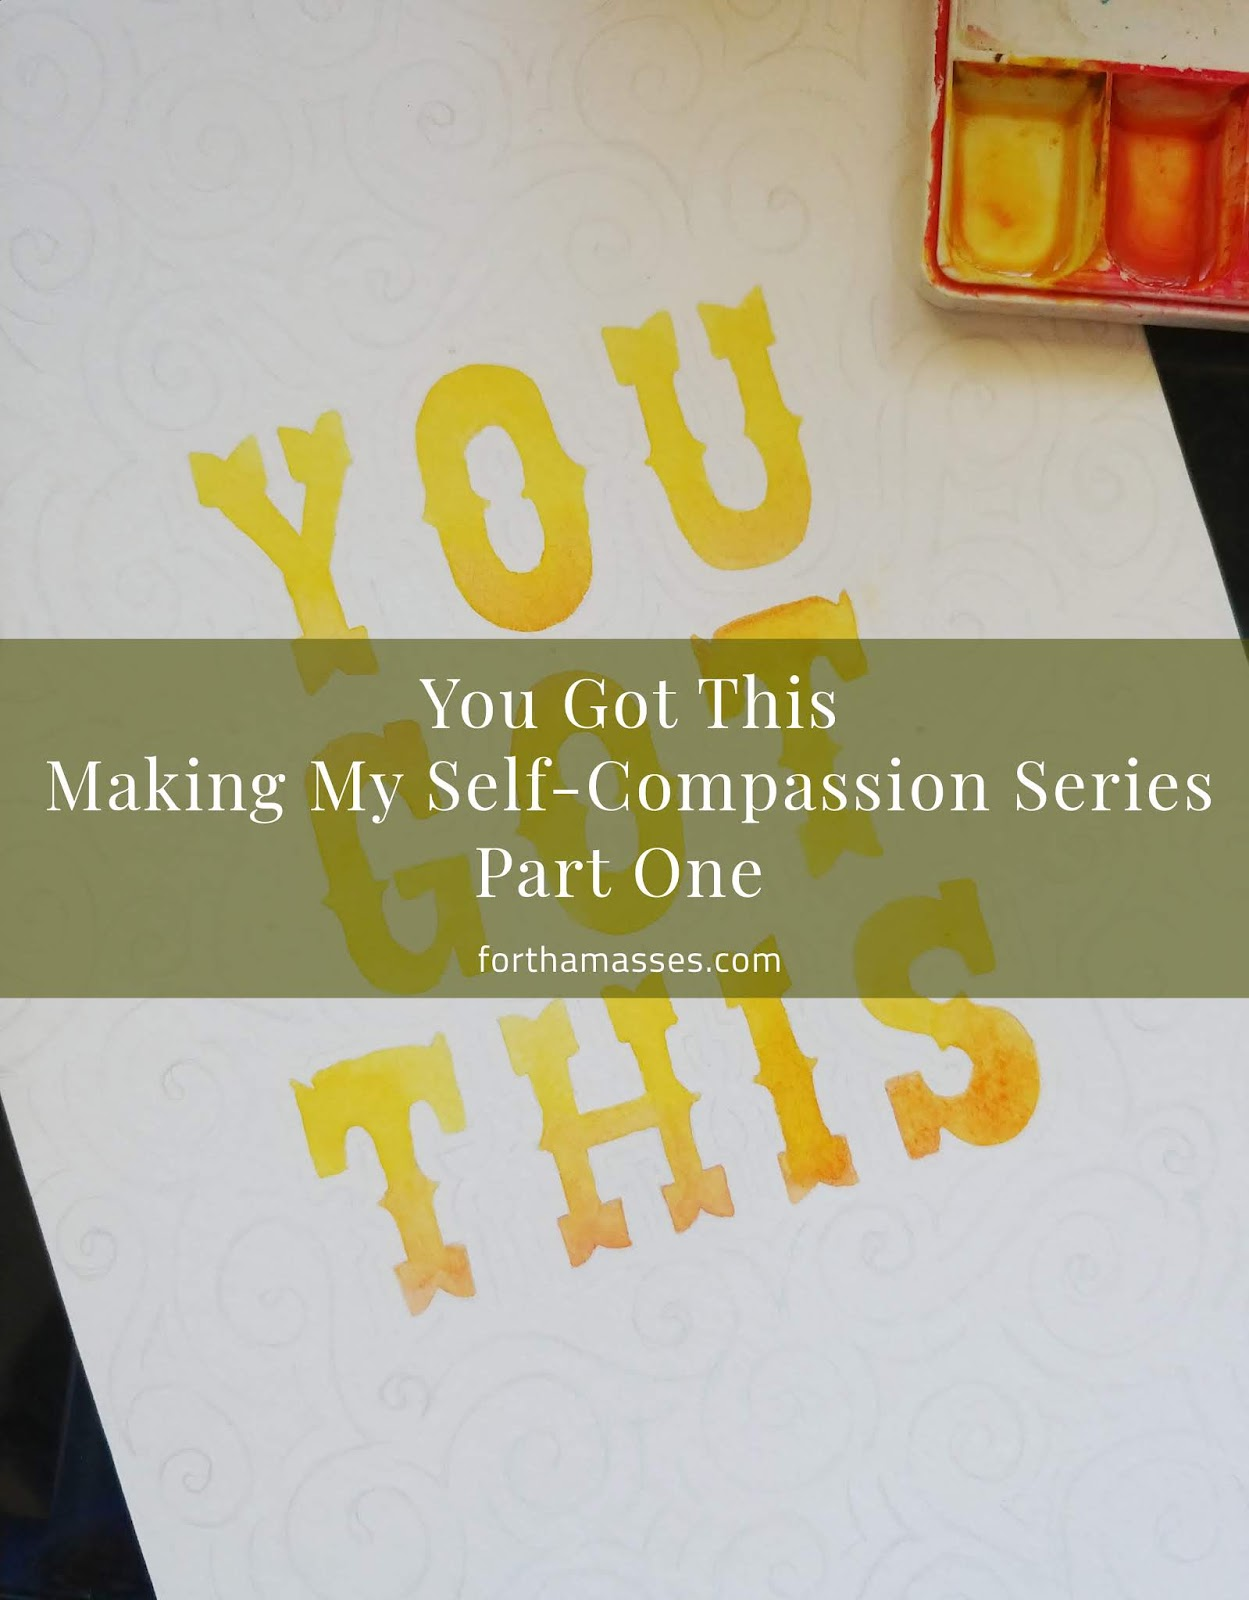 you got this. making my self-compassion series part one